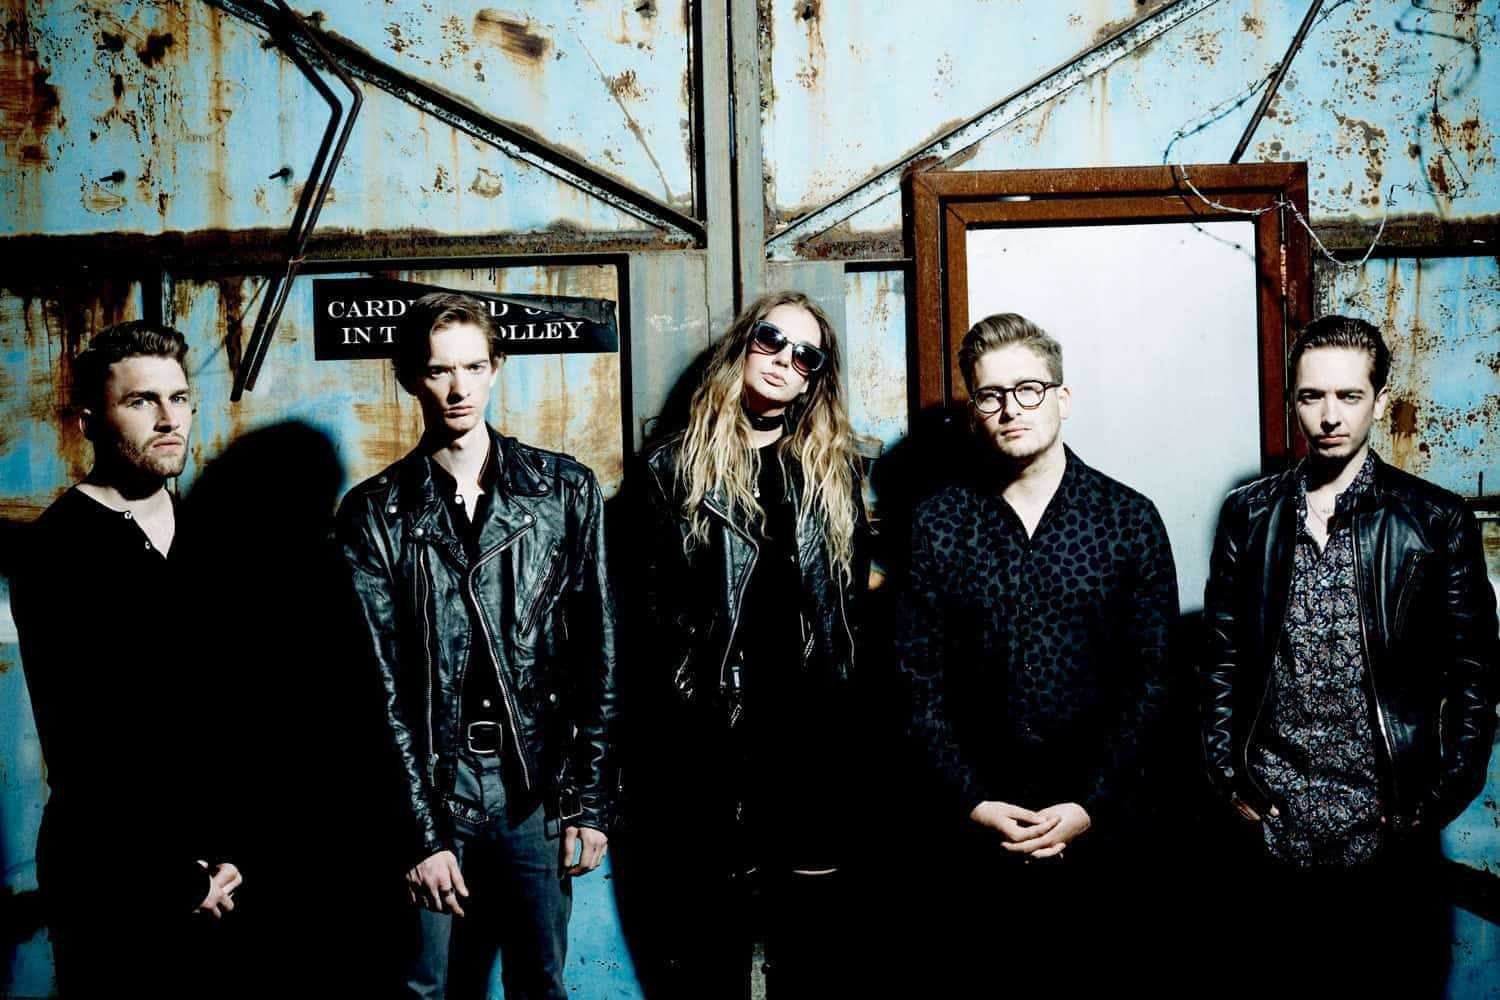 Marmozets have dropped a brand new banger 'Habits', and announced details of their second album